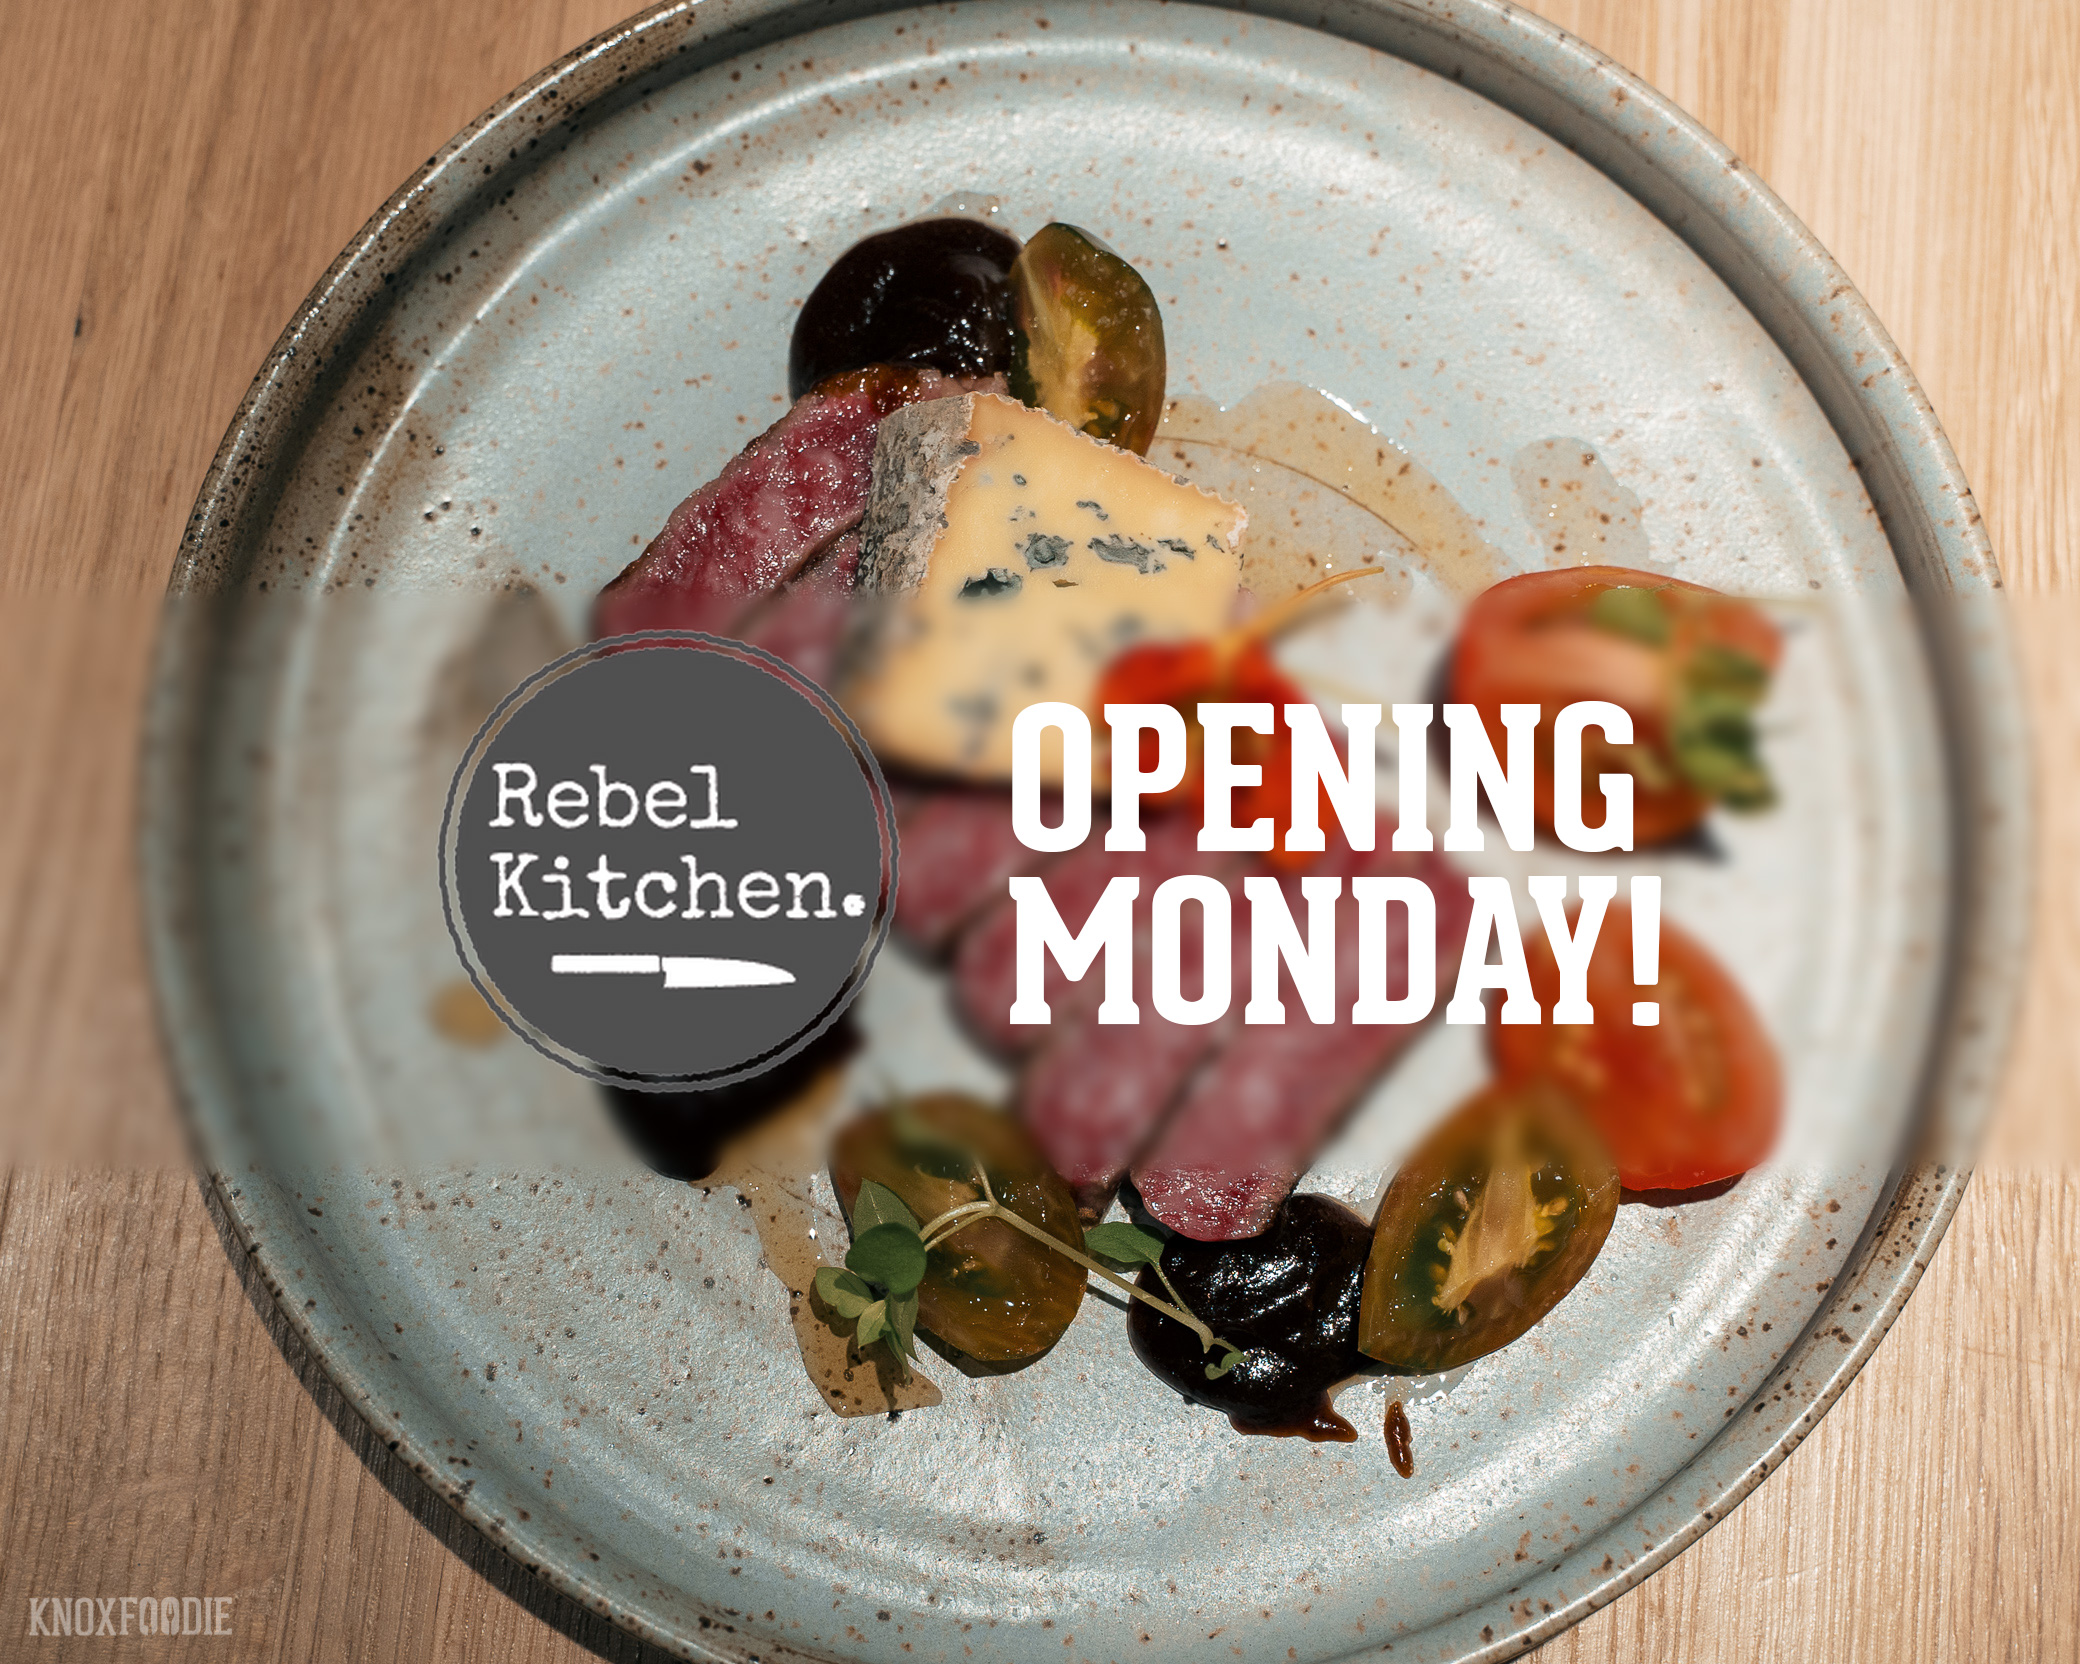 Rebel Kitchen - Old City Knoxville